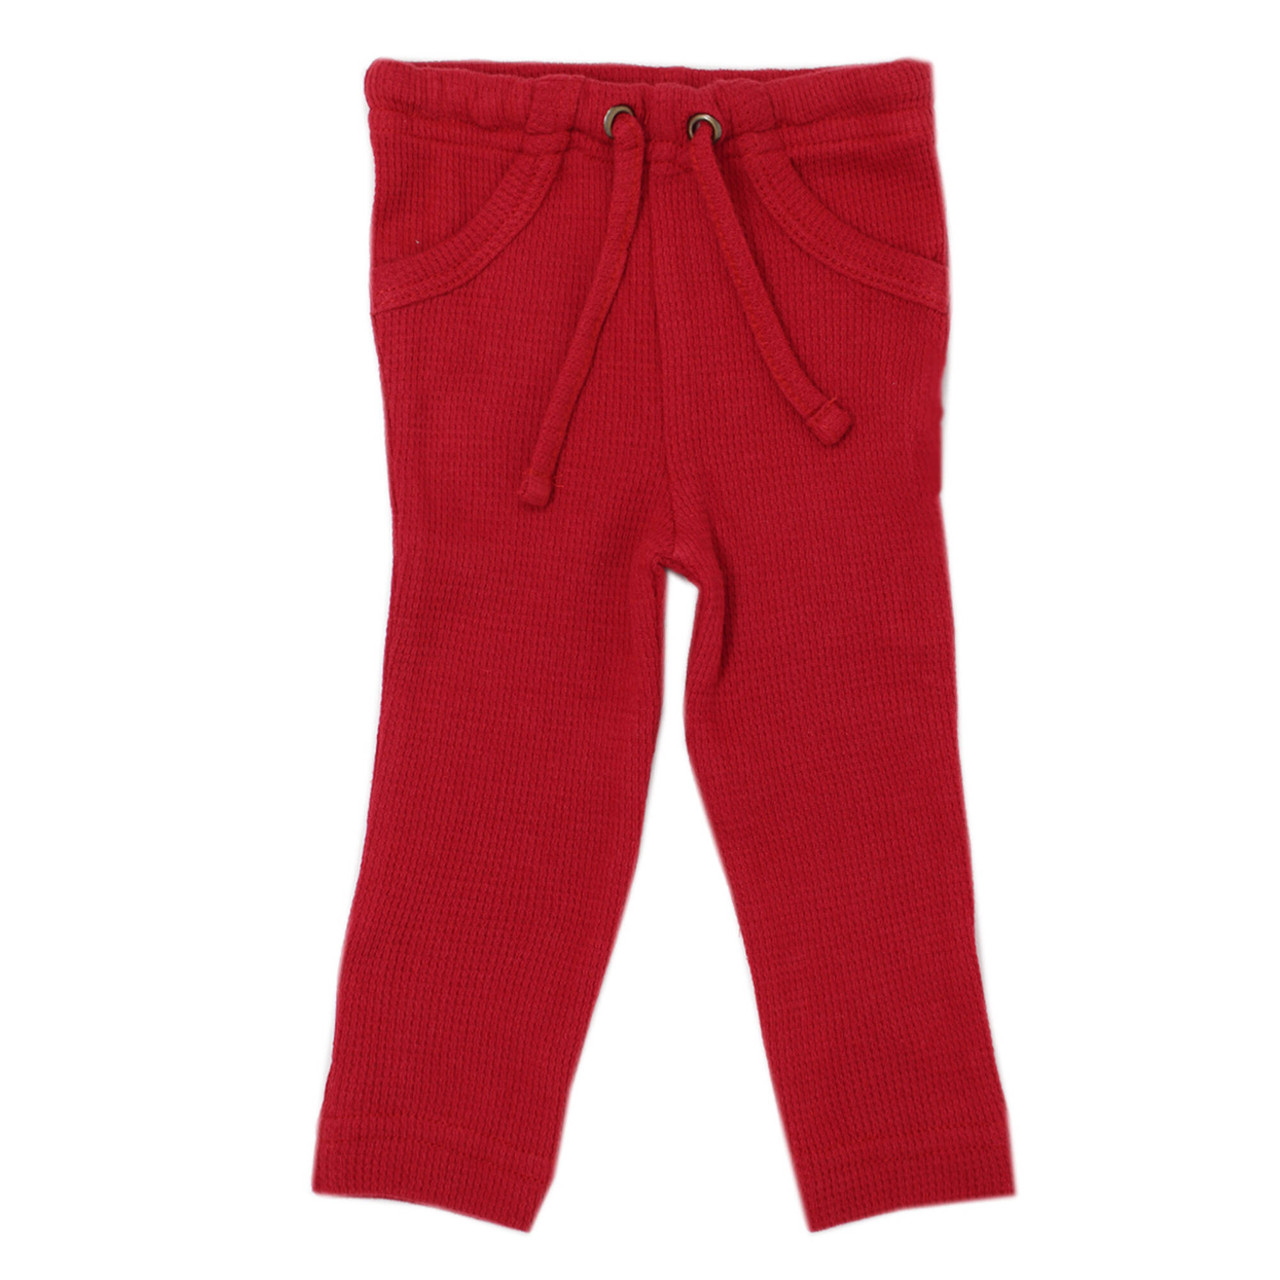 Organic Thermal Drawstring Fitted Pants in Cherry, Flat